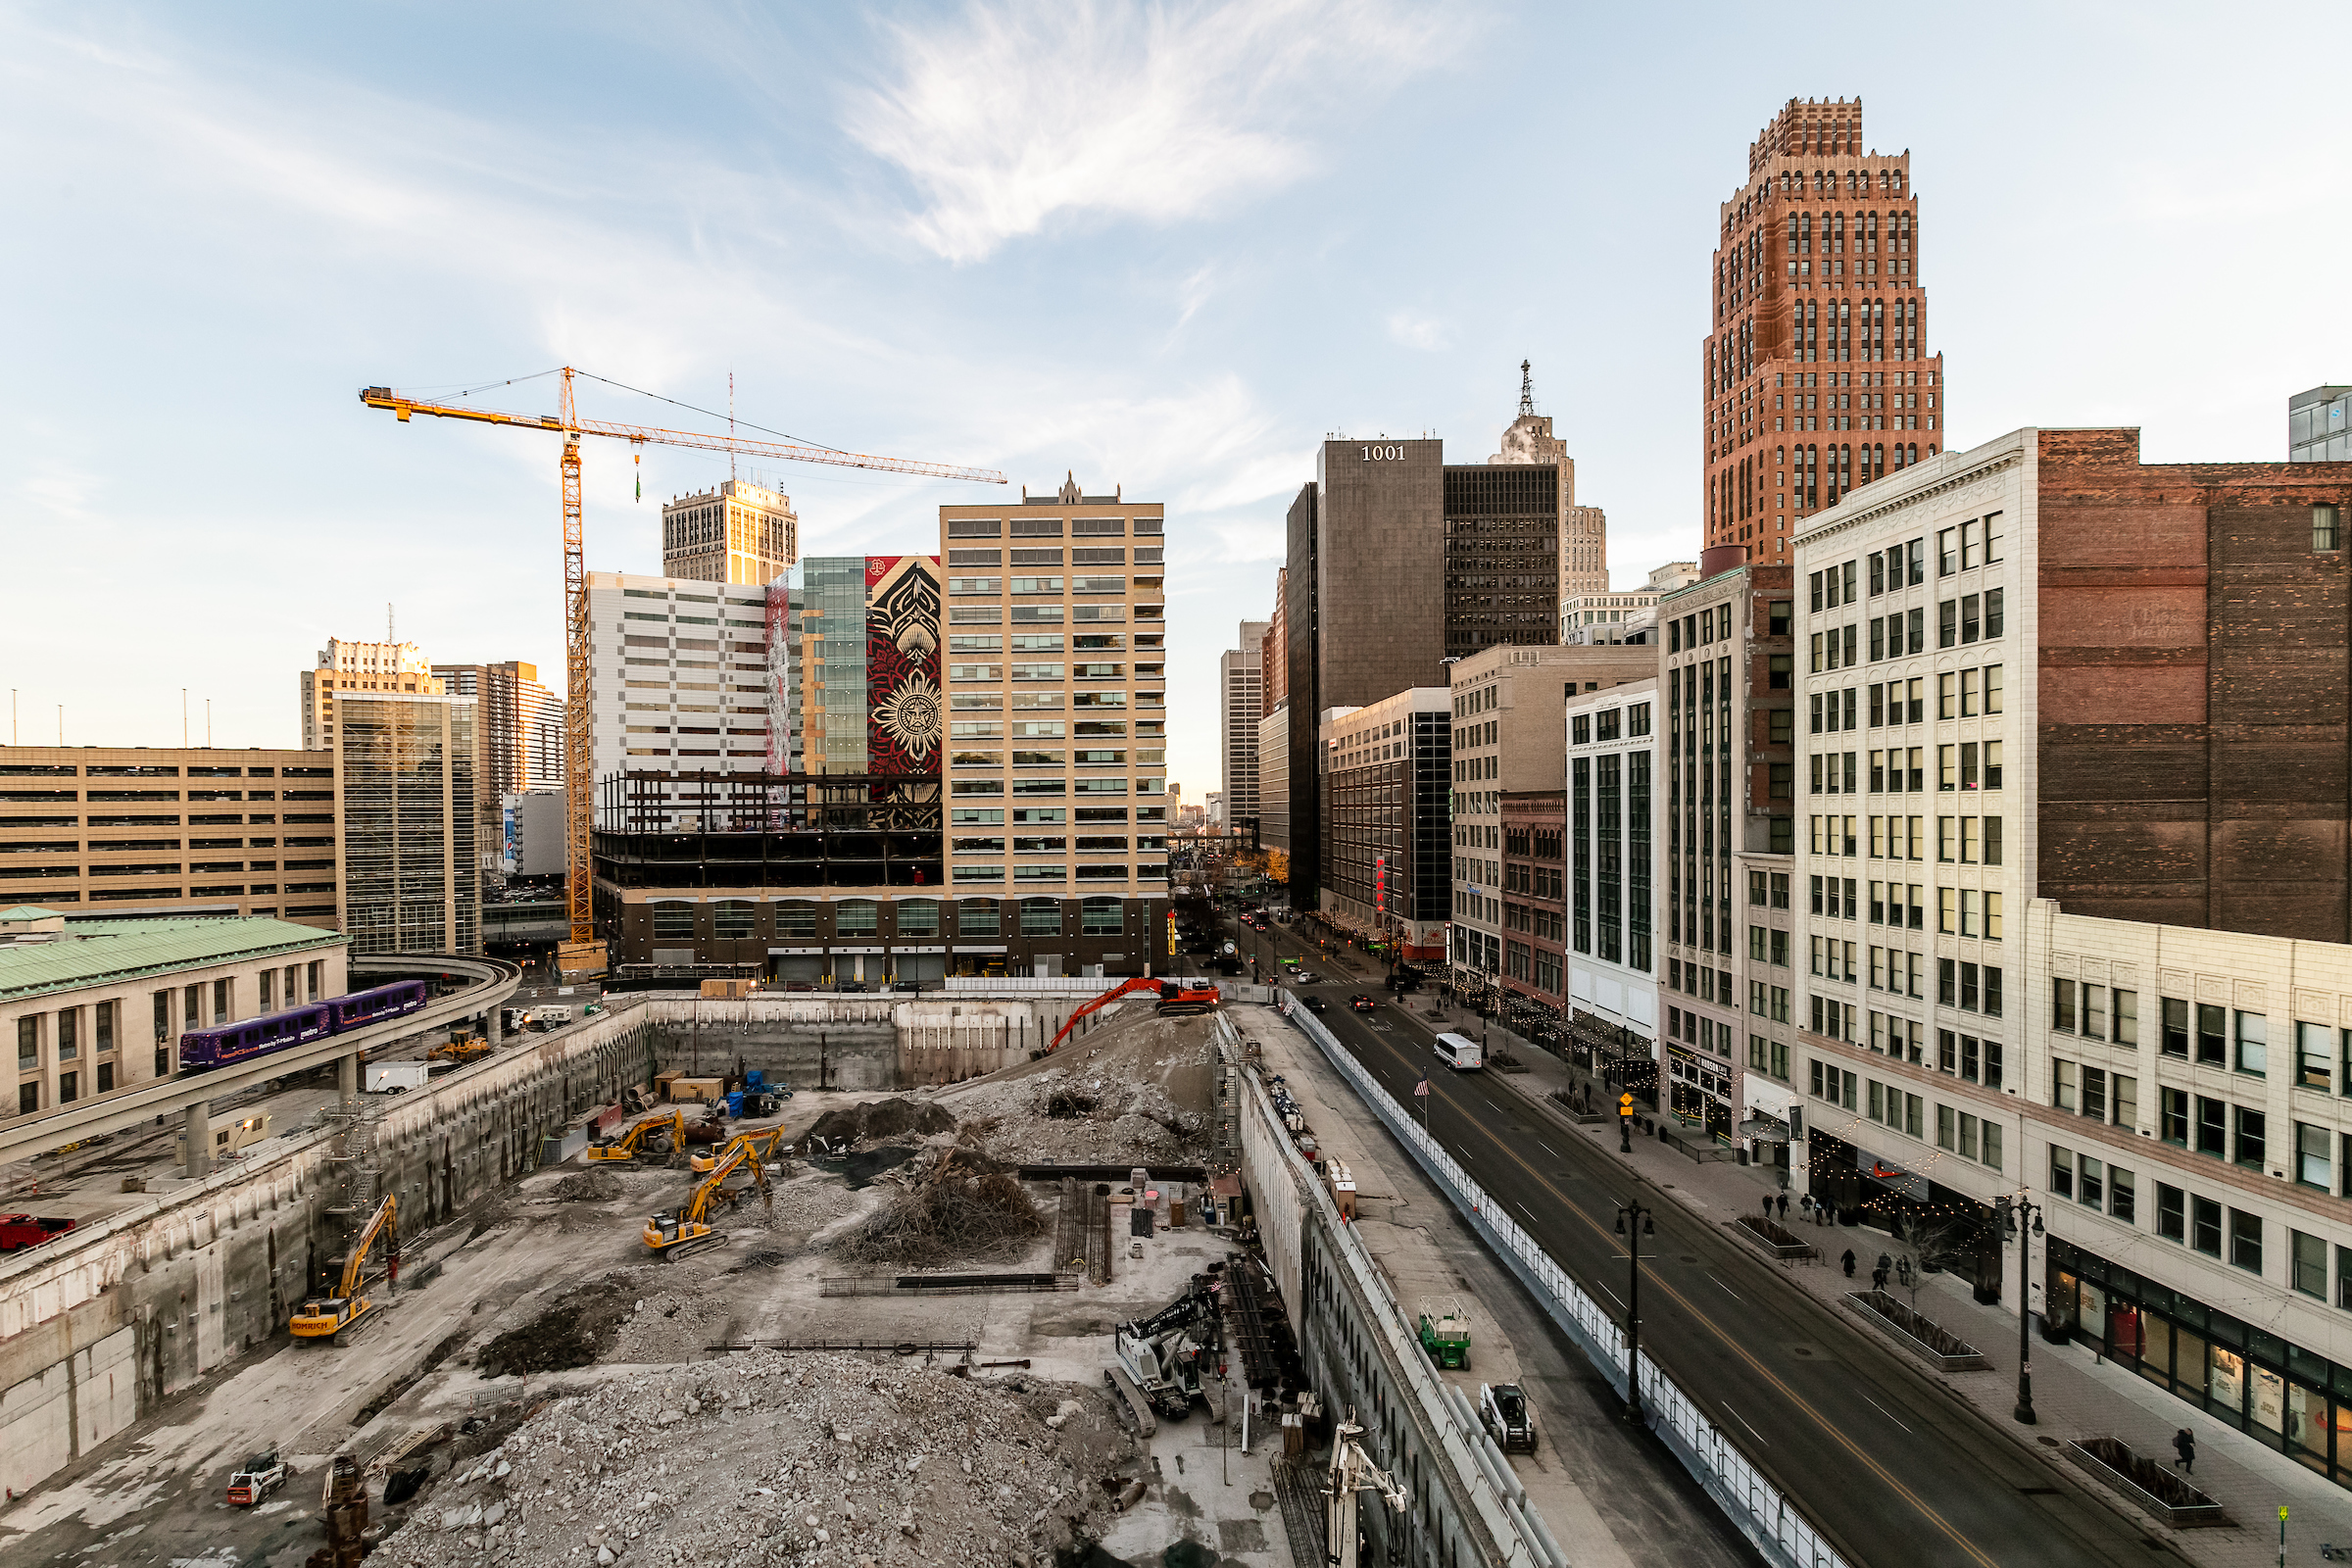 A tall crane sits next to a large dig site in the middle of a downtown.